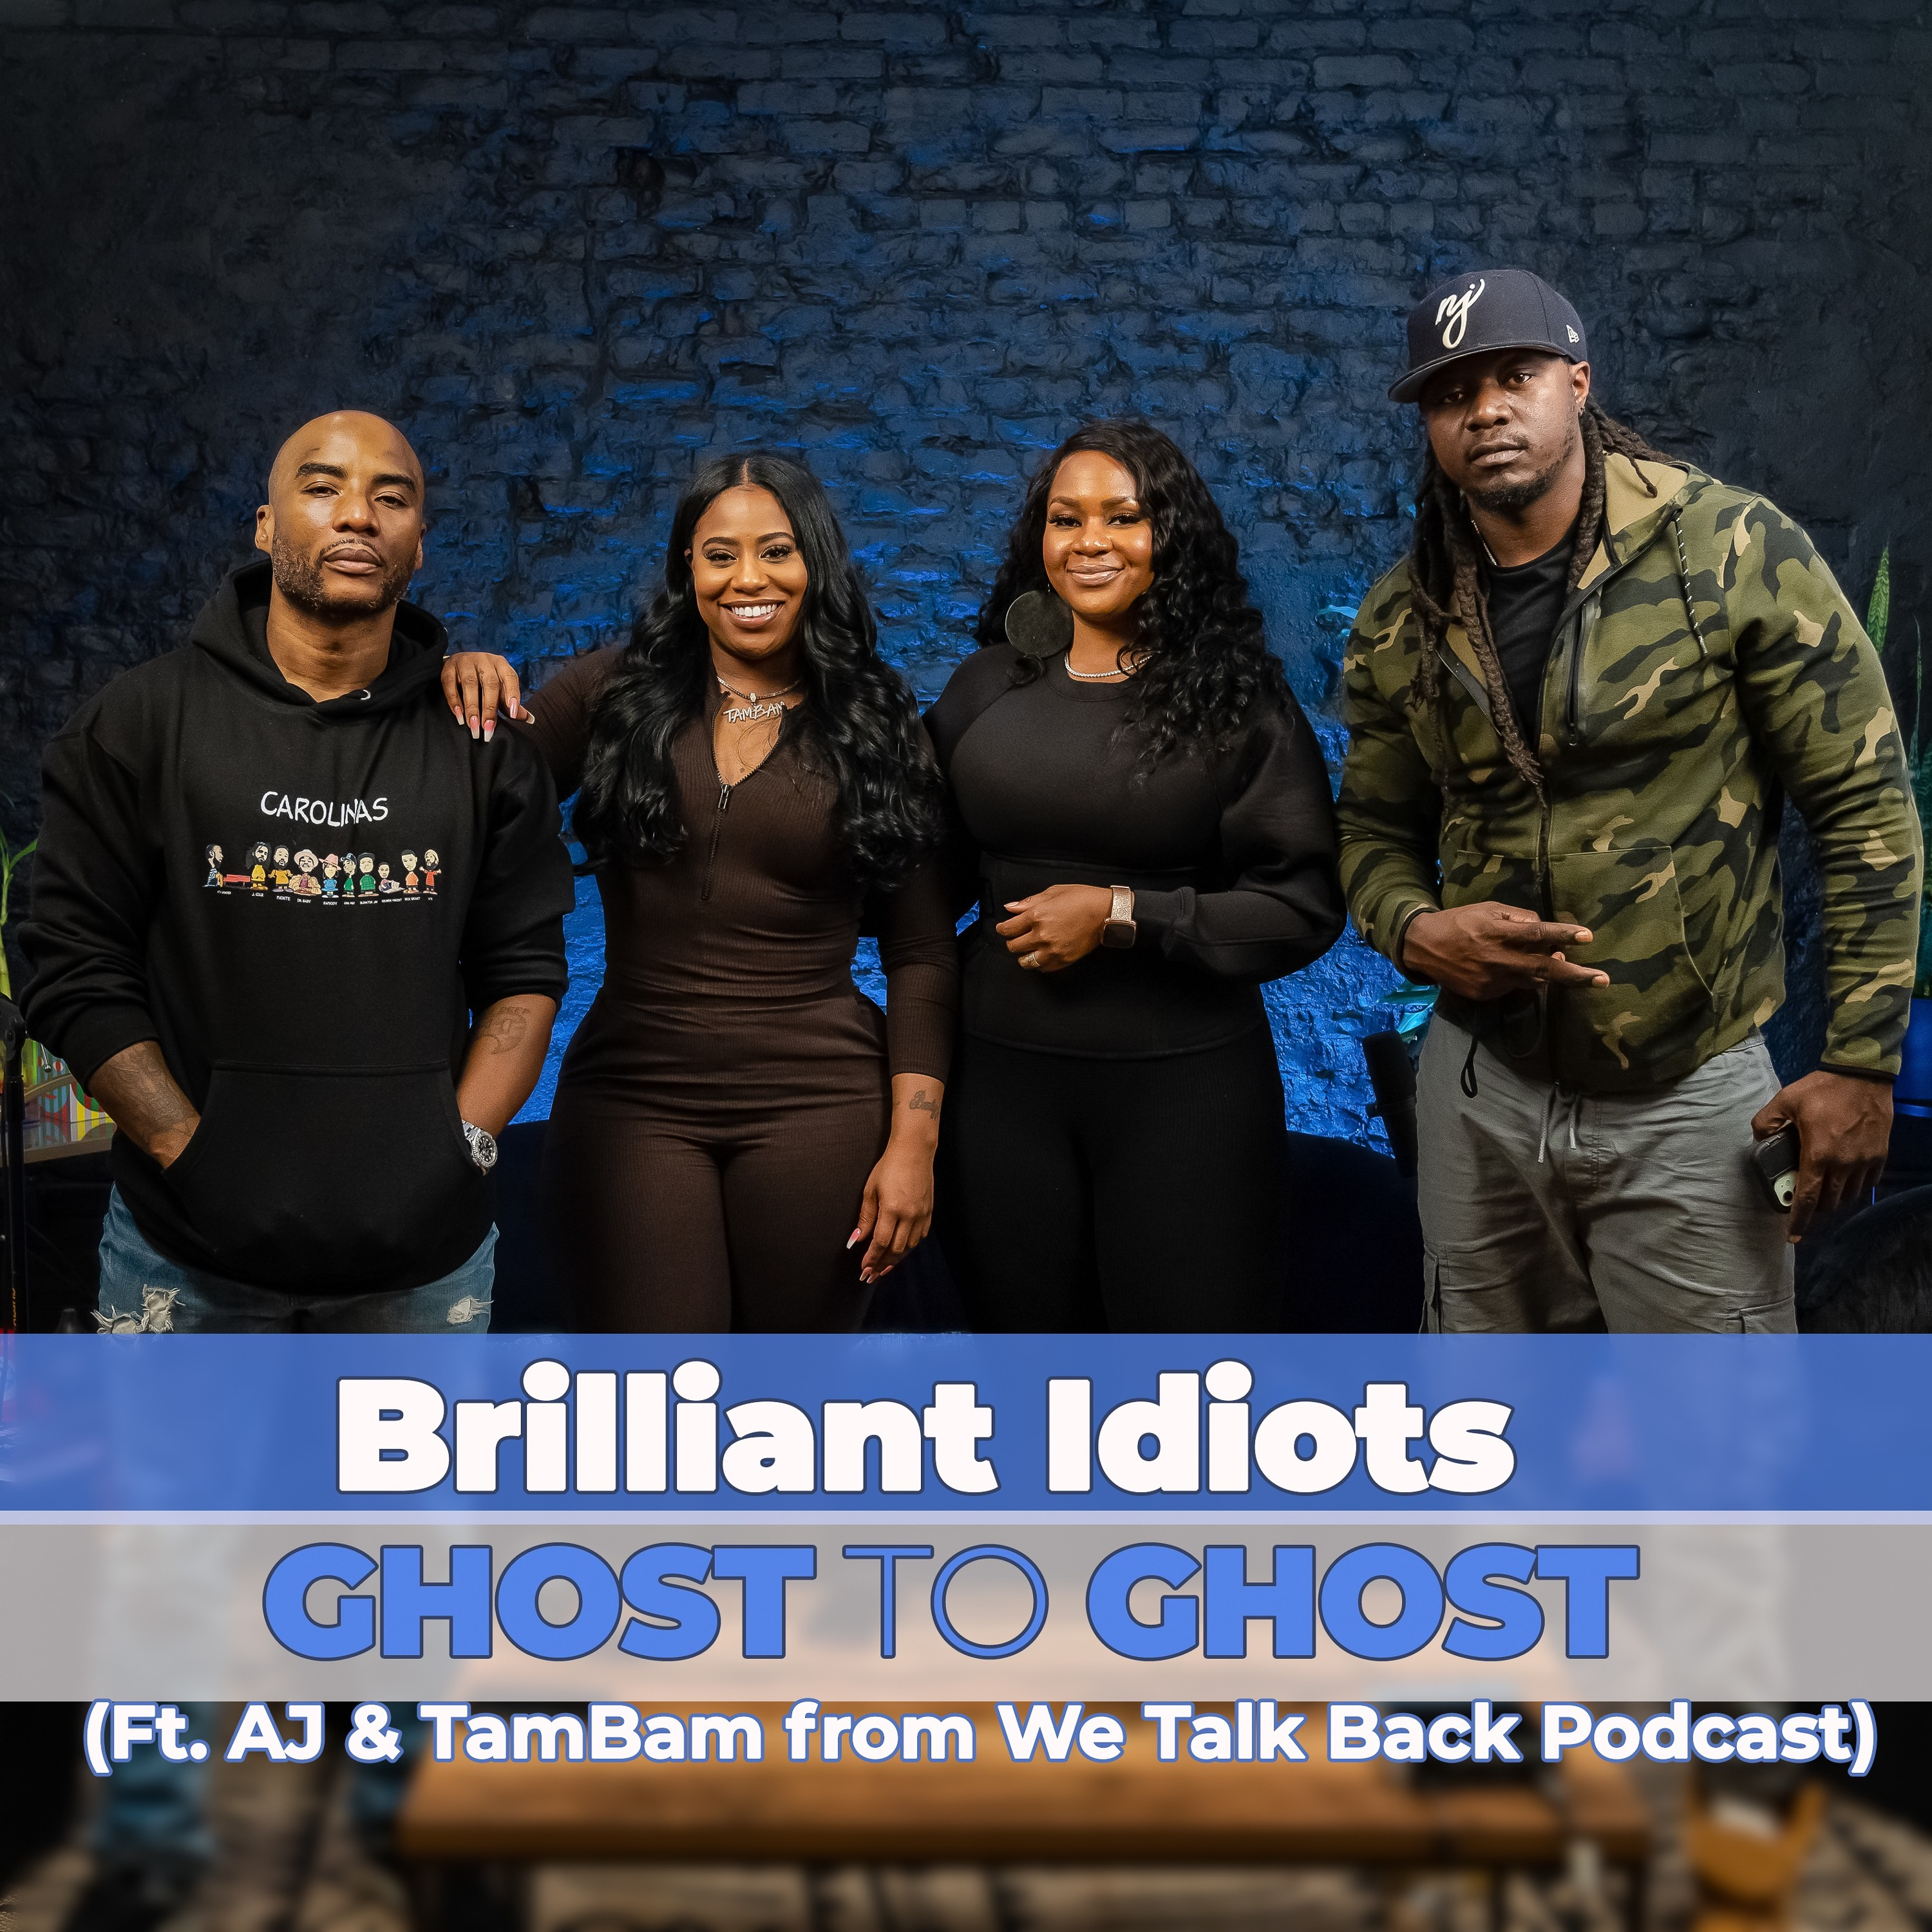 Ghost to Ghost (Ft. AJ & TamBam from We Talk Back Podcast)